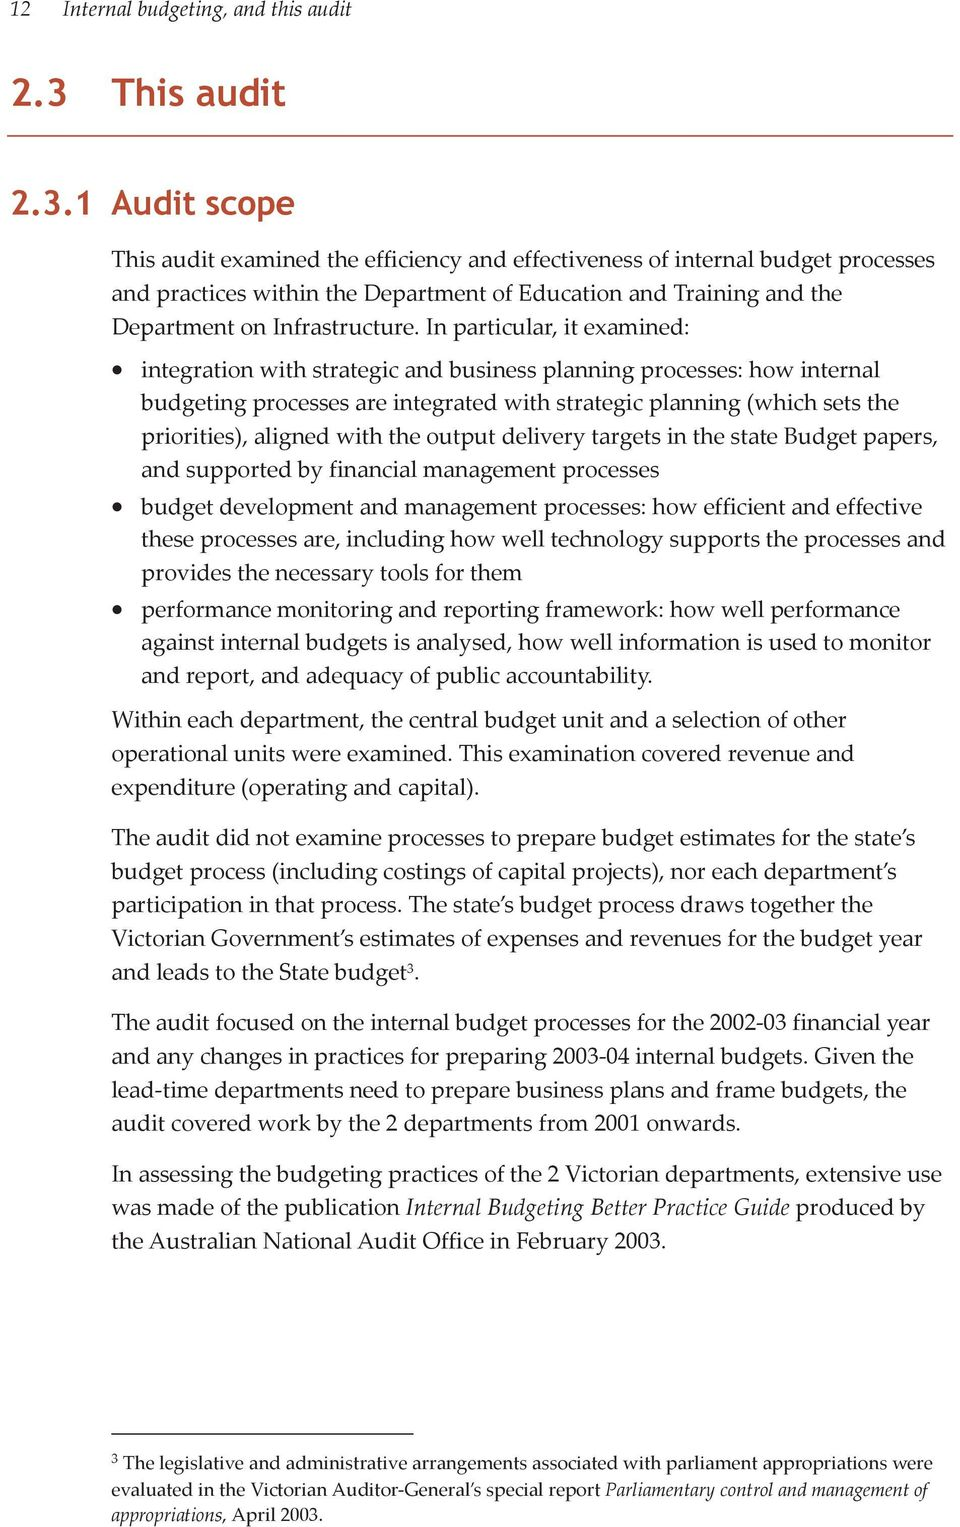 1 Audit scope This audit examined the efficiency and effectiveness of internal budget processes and practices within the Department of Education and Training and the Department on Infrastructure.